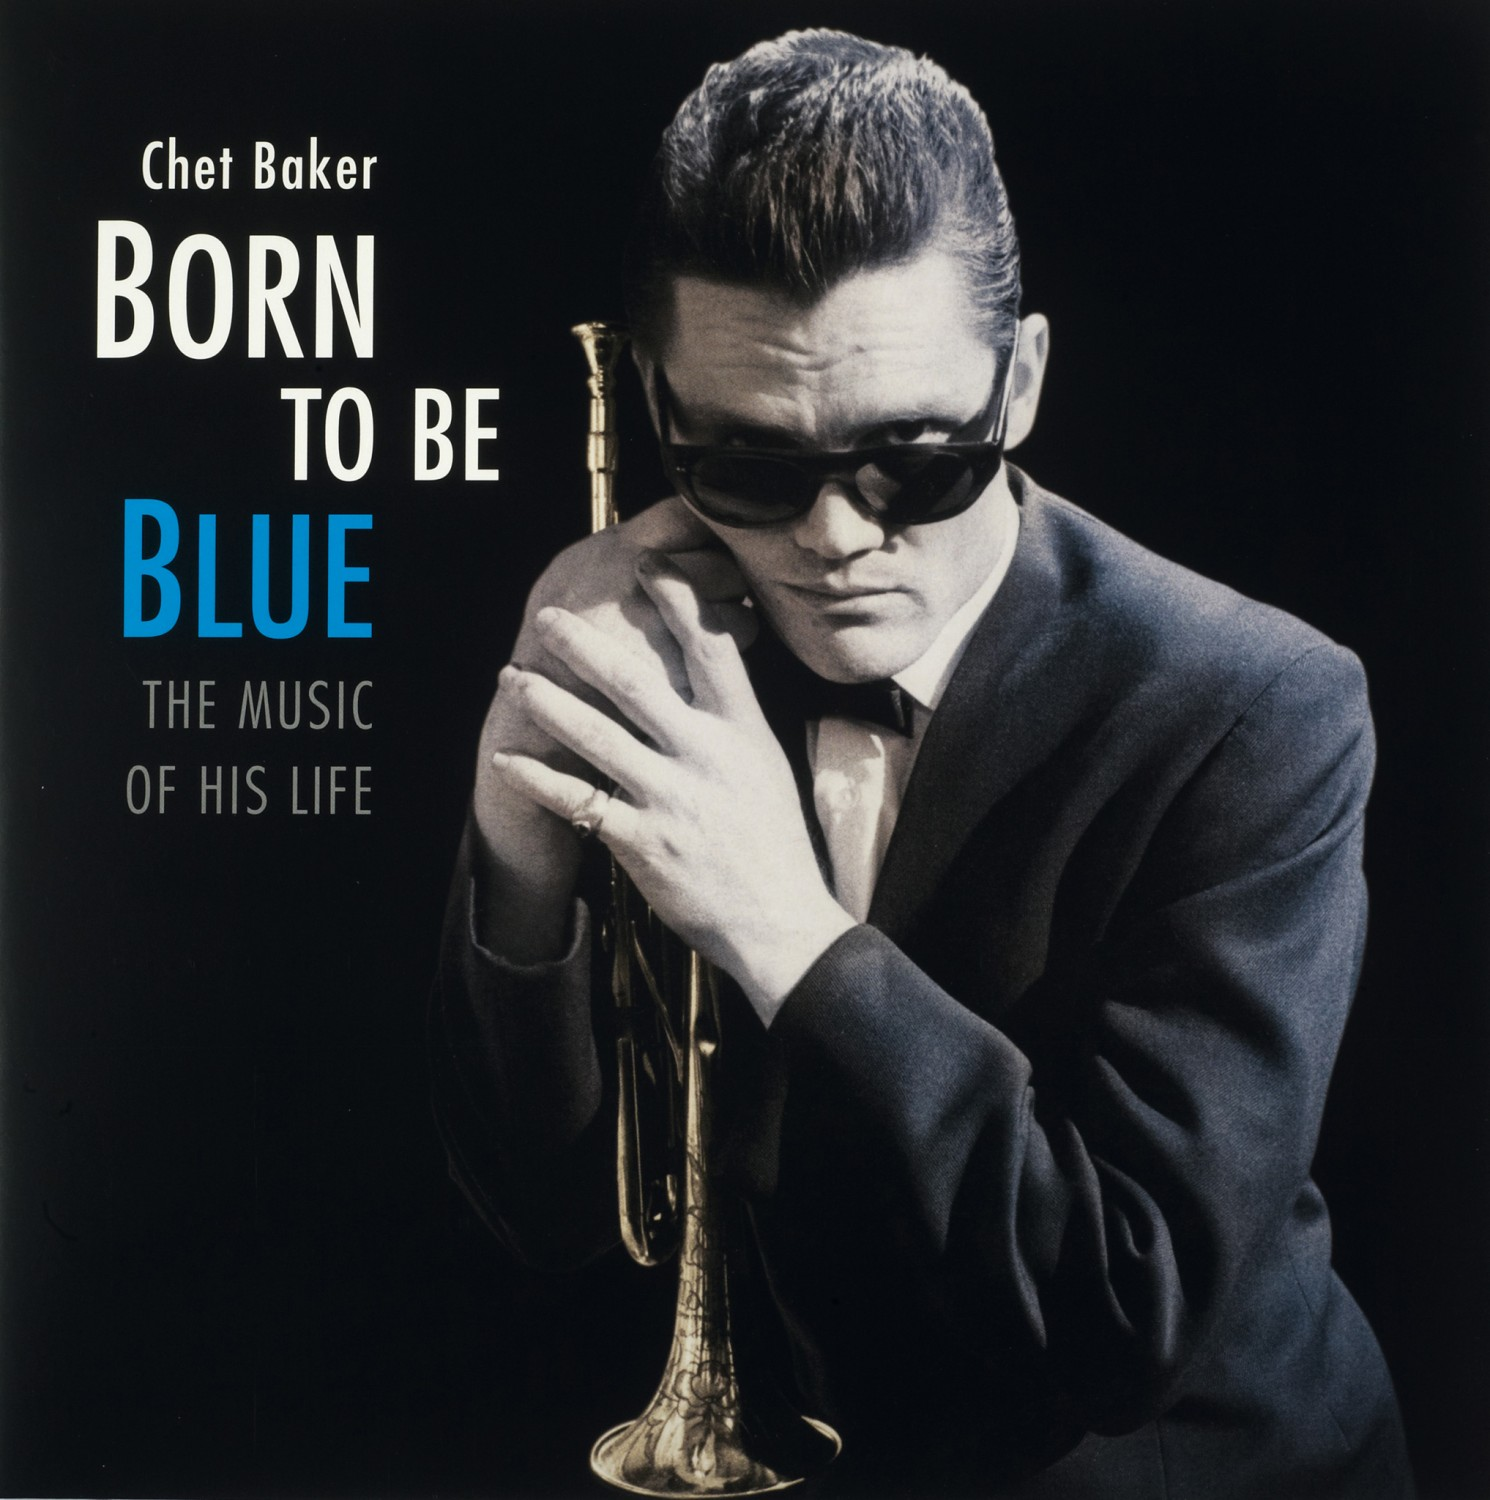 Schallplatte Chet Baker - Born to Be Blue (Jazz Wax Records) im Test, Bild 1